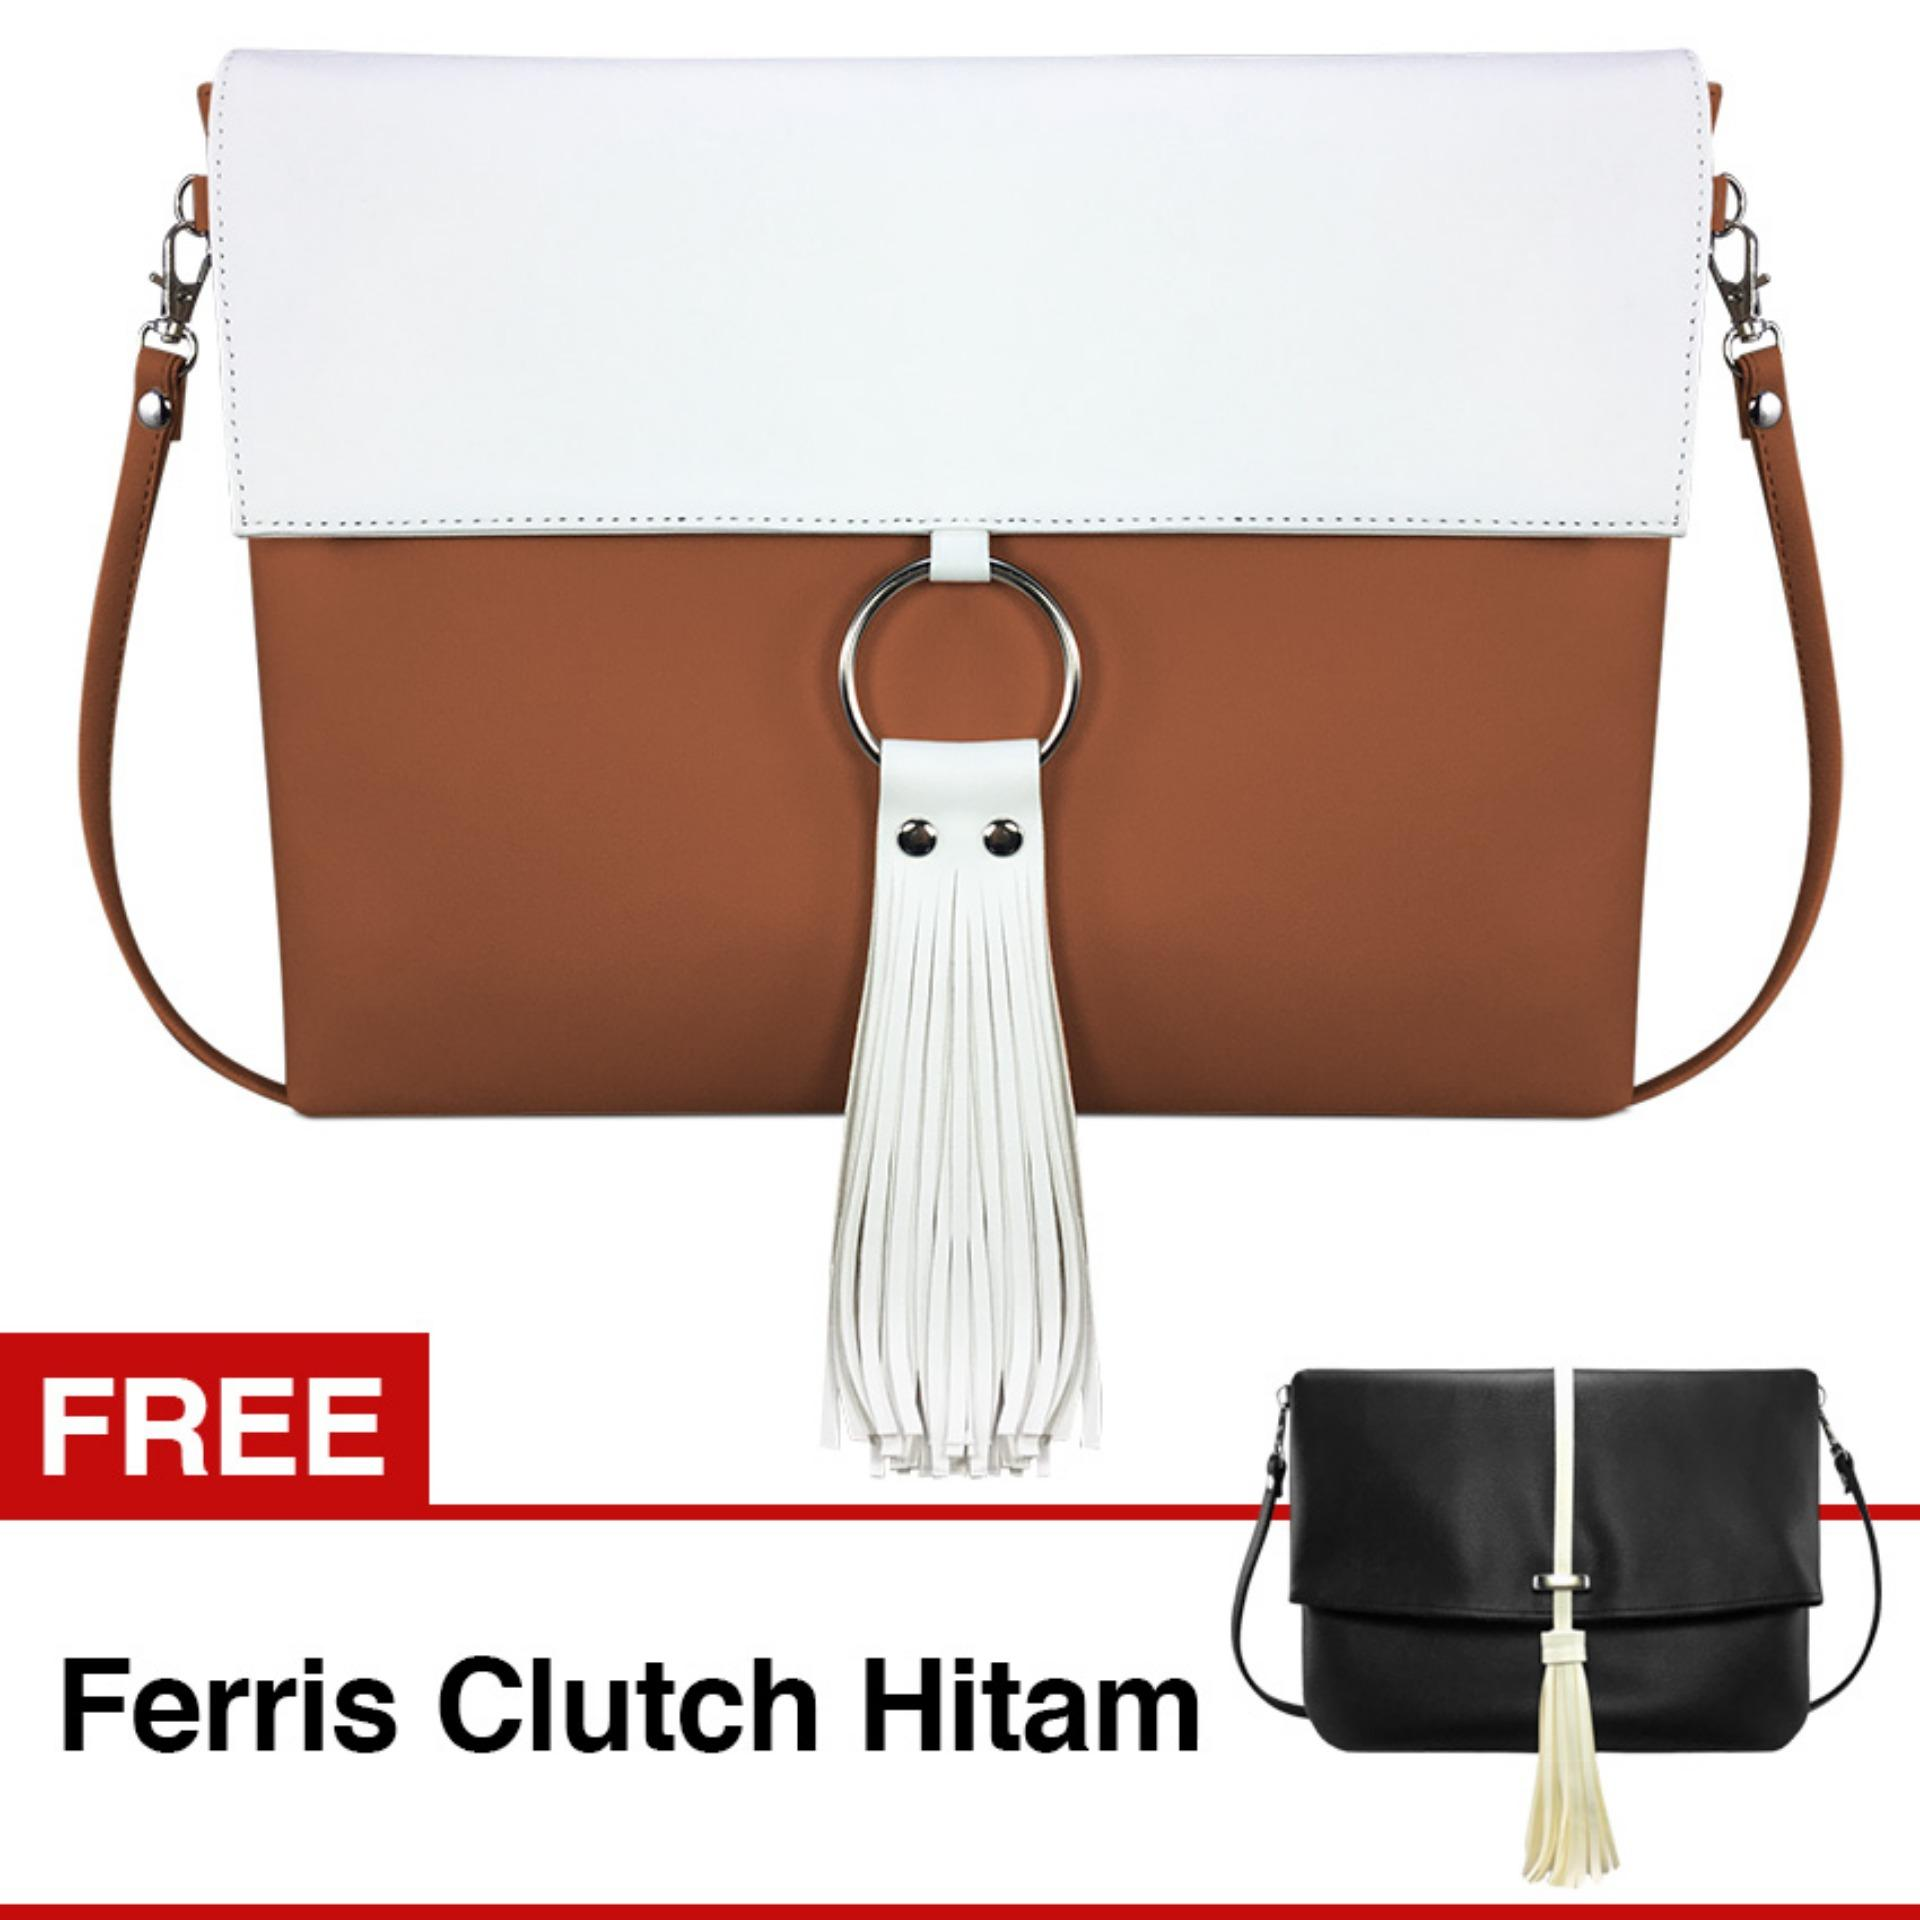 Spesifikasi Vona Robin Gratis Free Ferris Hitam Paket 2 In 1 Tas Wanita Selempang Tangan Shoulder Bag Handbag Sling Crossbody Tote Dompet Slingbag Purse Clutch Faux Pu Leather Kulit Sintetis Tali Panjang Best Seller Terbaru New Branded Fashion Korean Style Vona Terbaru